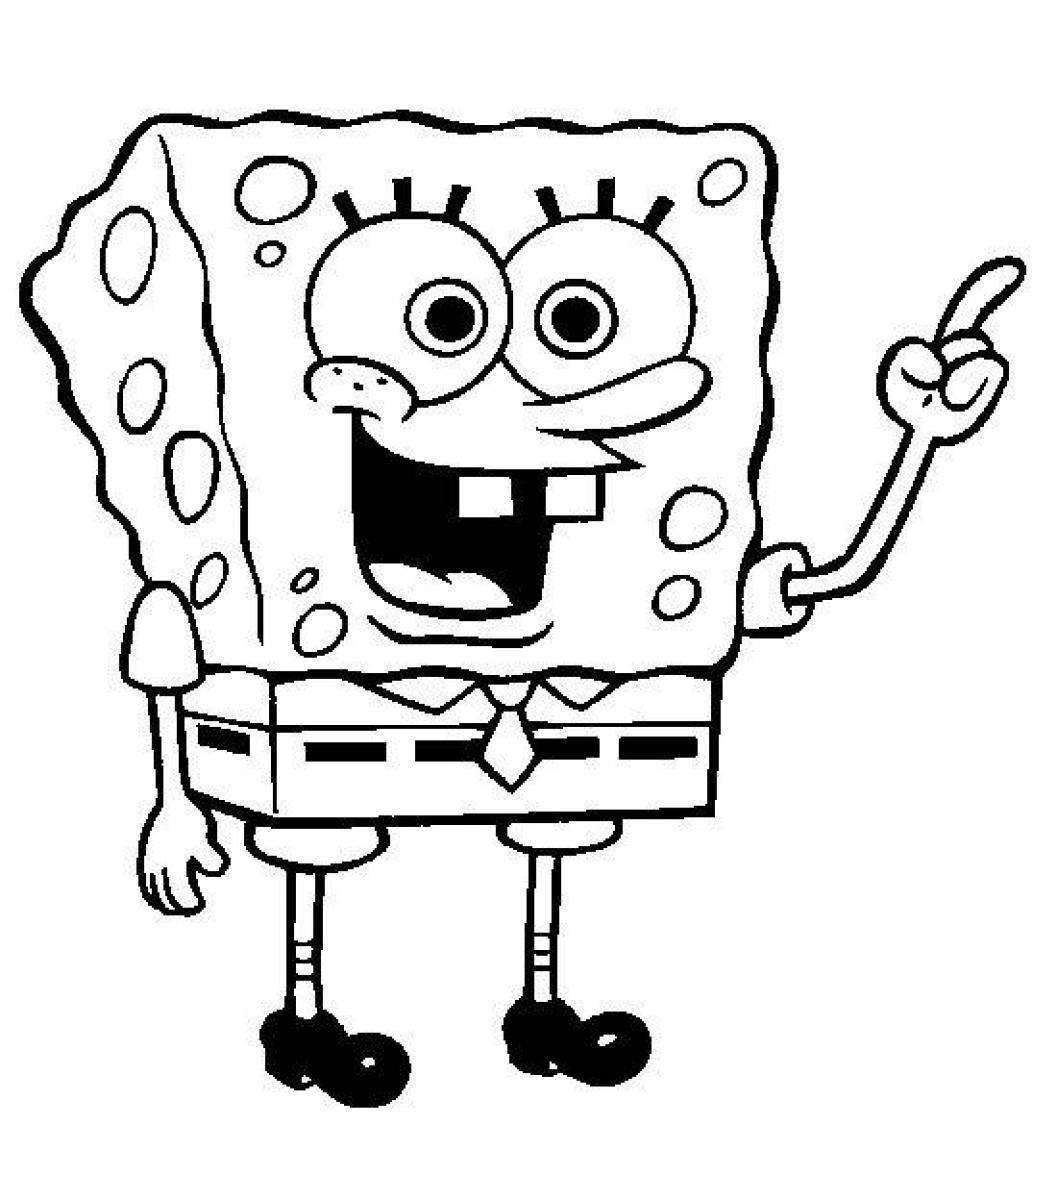 free spongebob coloring pages - printable spongebob squarepants coloring pages